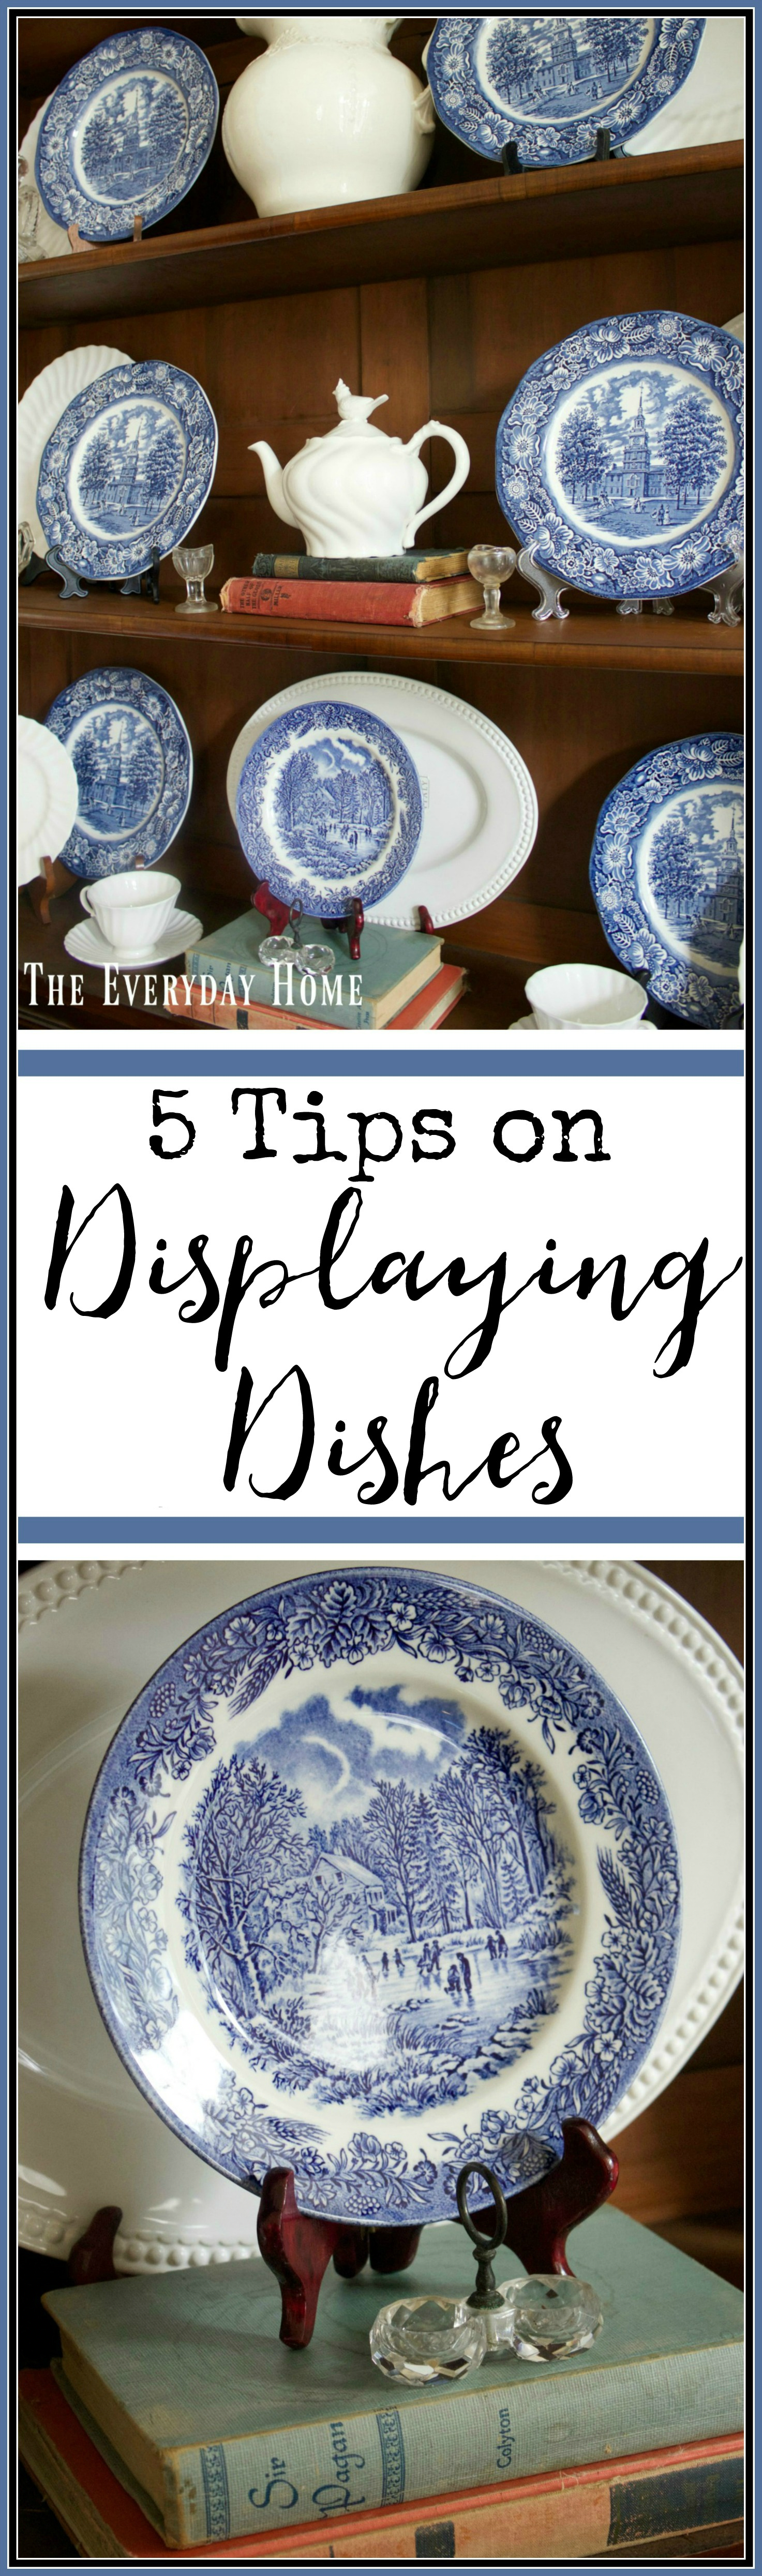 5-tips-on-how-to-style-dishes | The Everyday Home | www.everydayhomeblog.com